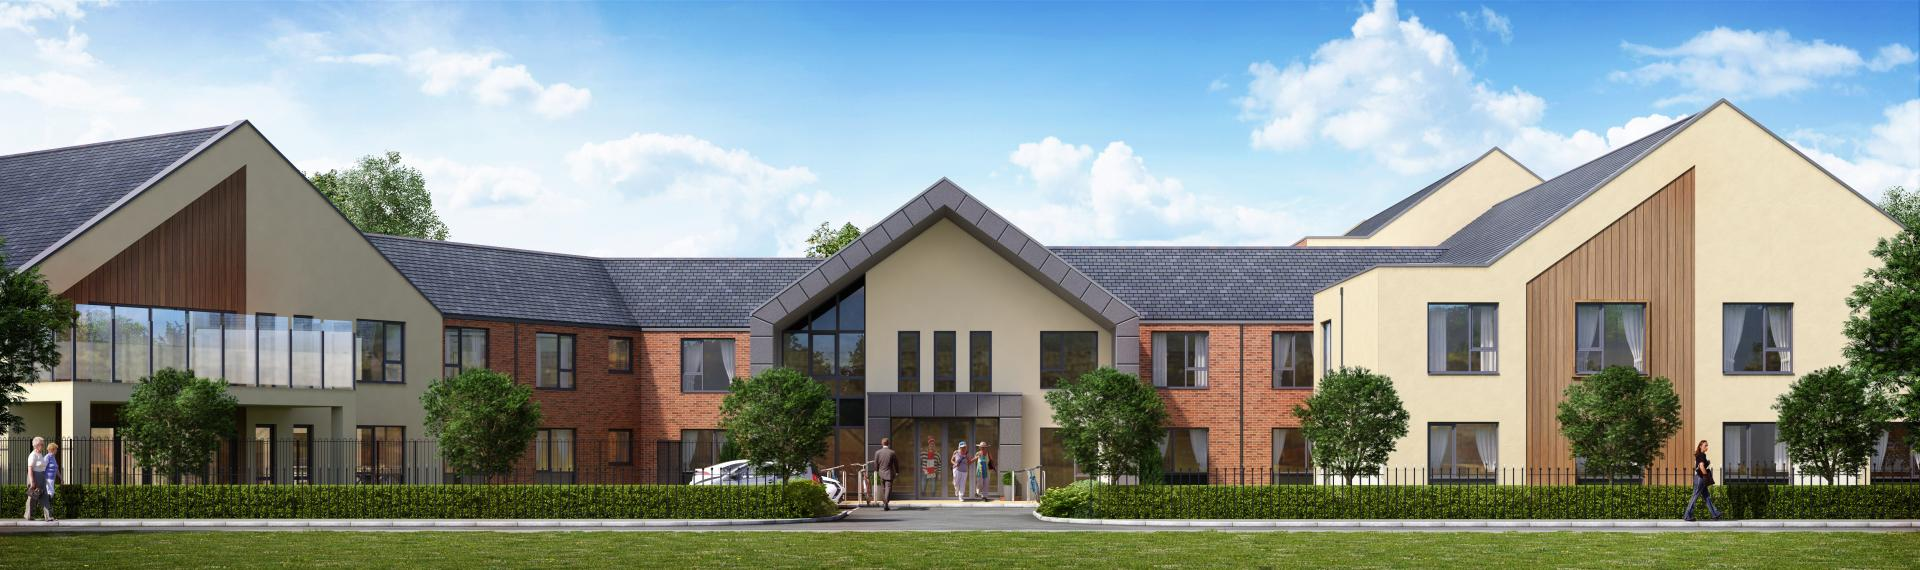 Parsons Grange Care Home, Shinfield (A-733) - Image 1